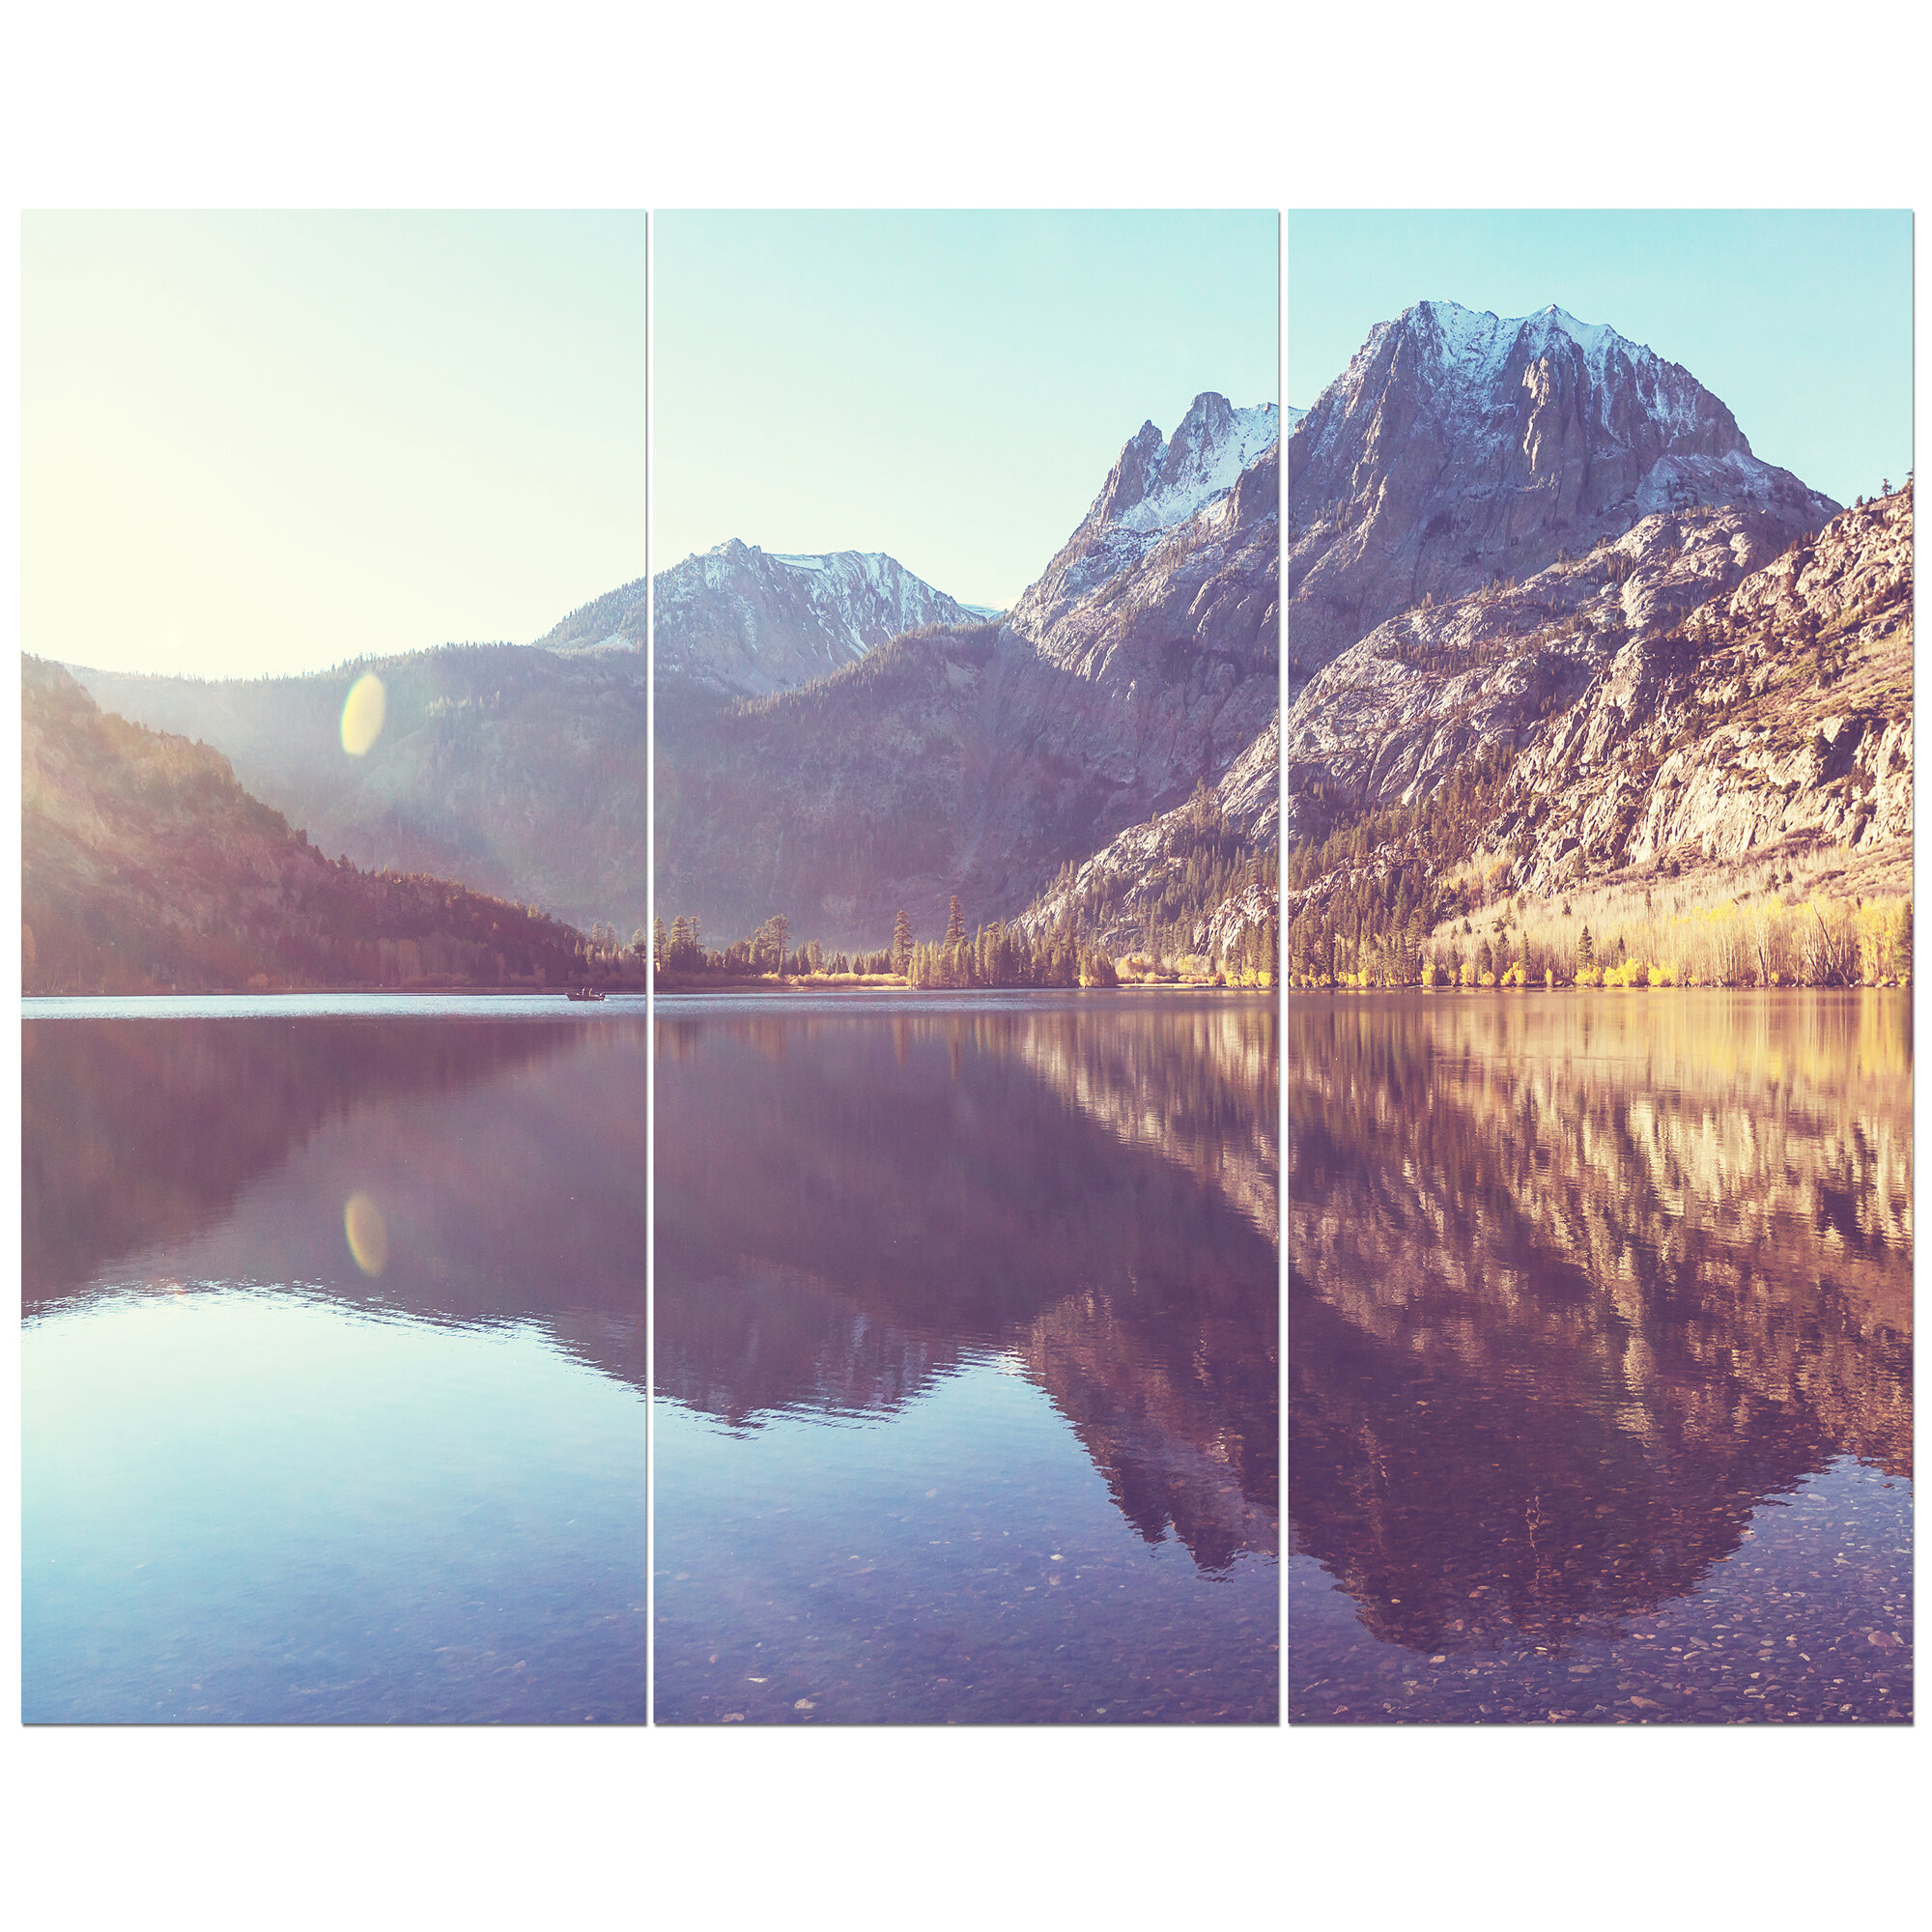 East Urban Home Lake View In Sierra Nevada Mountains Photographic Print Multi Piece Image On Wrapped Canvas Wayfair